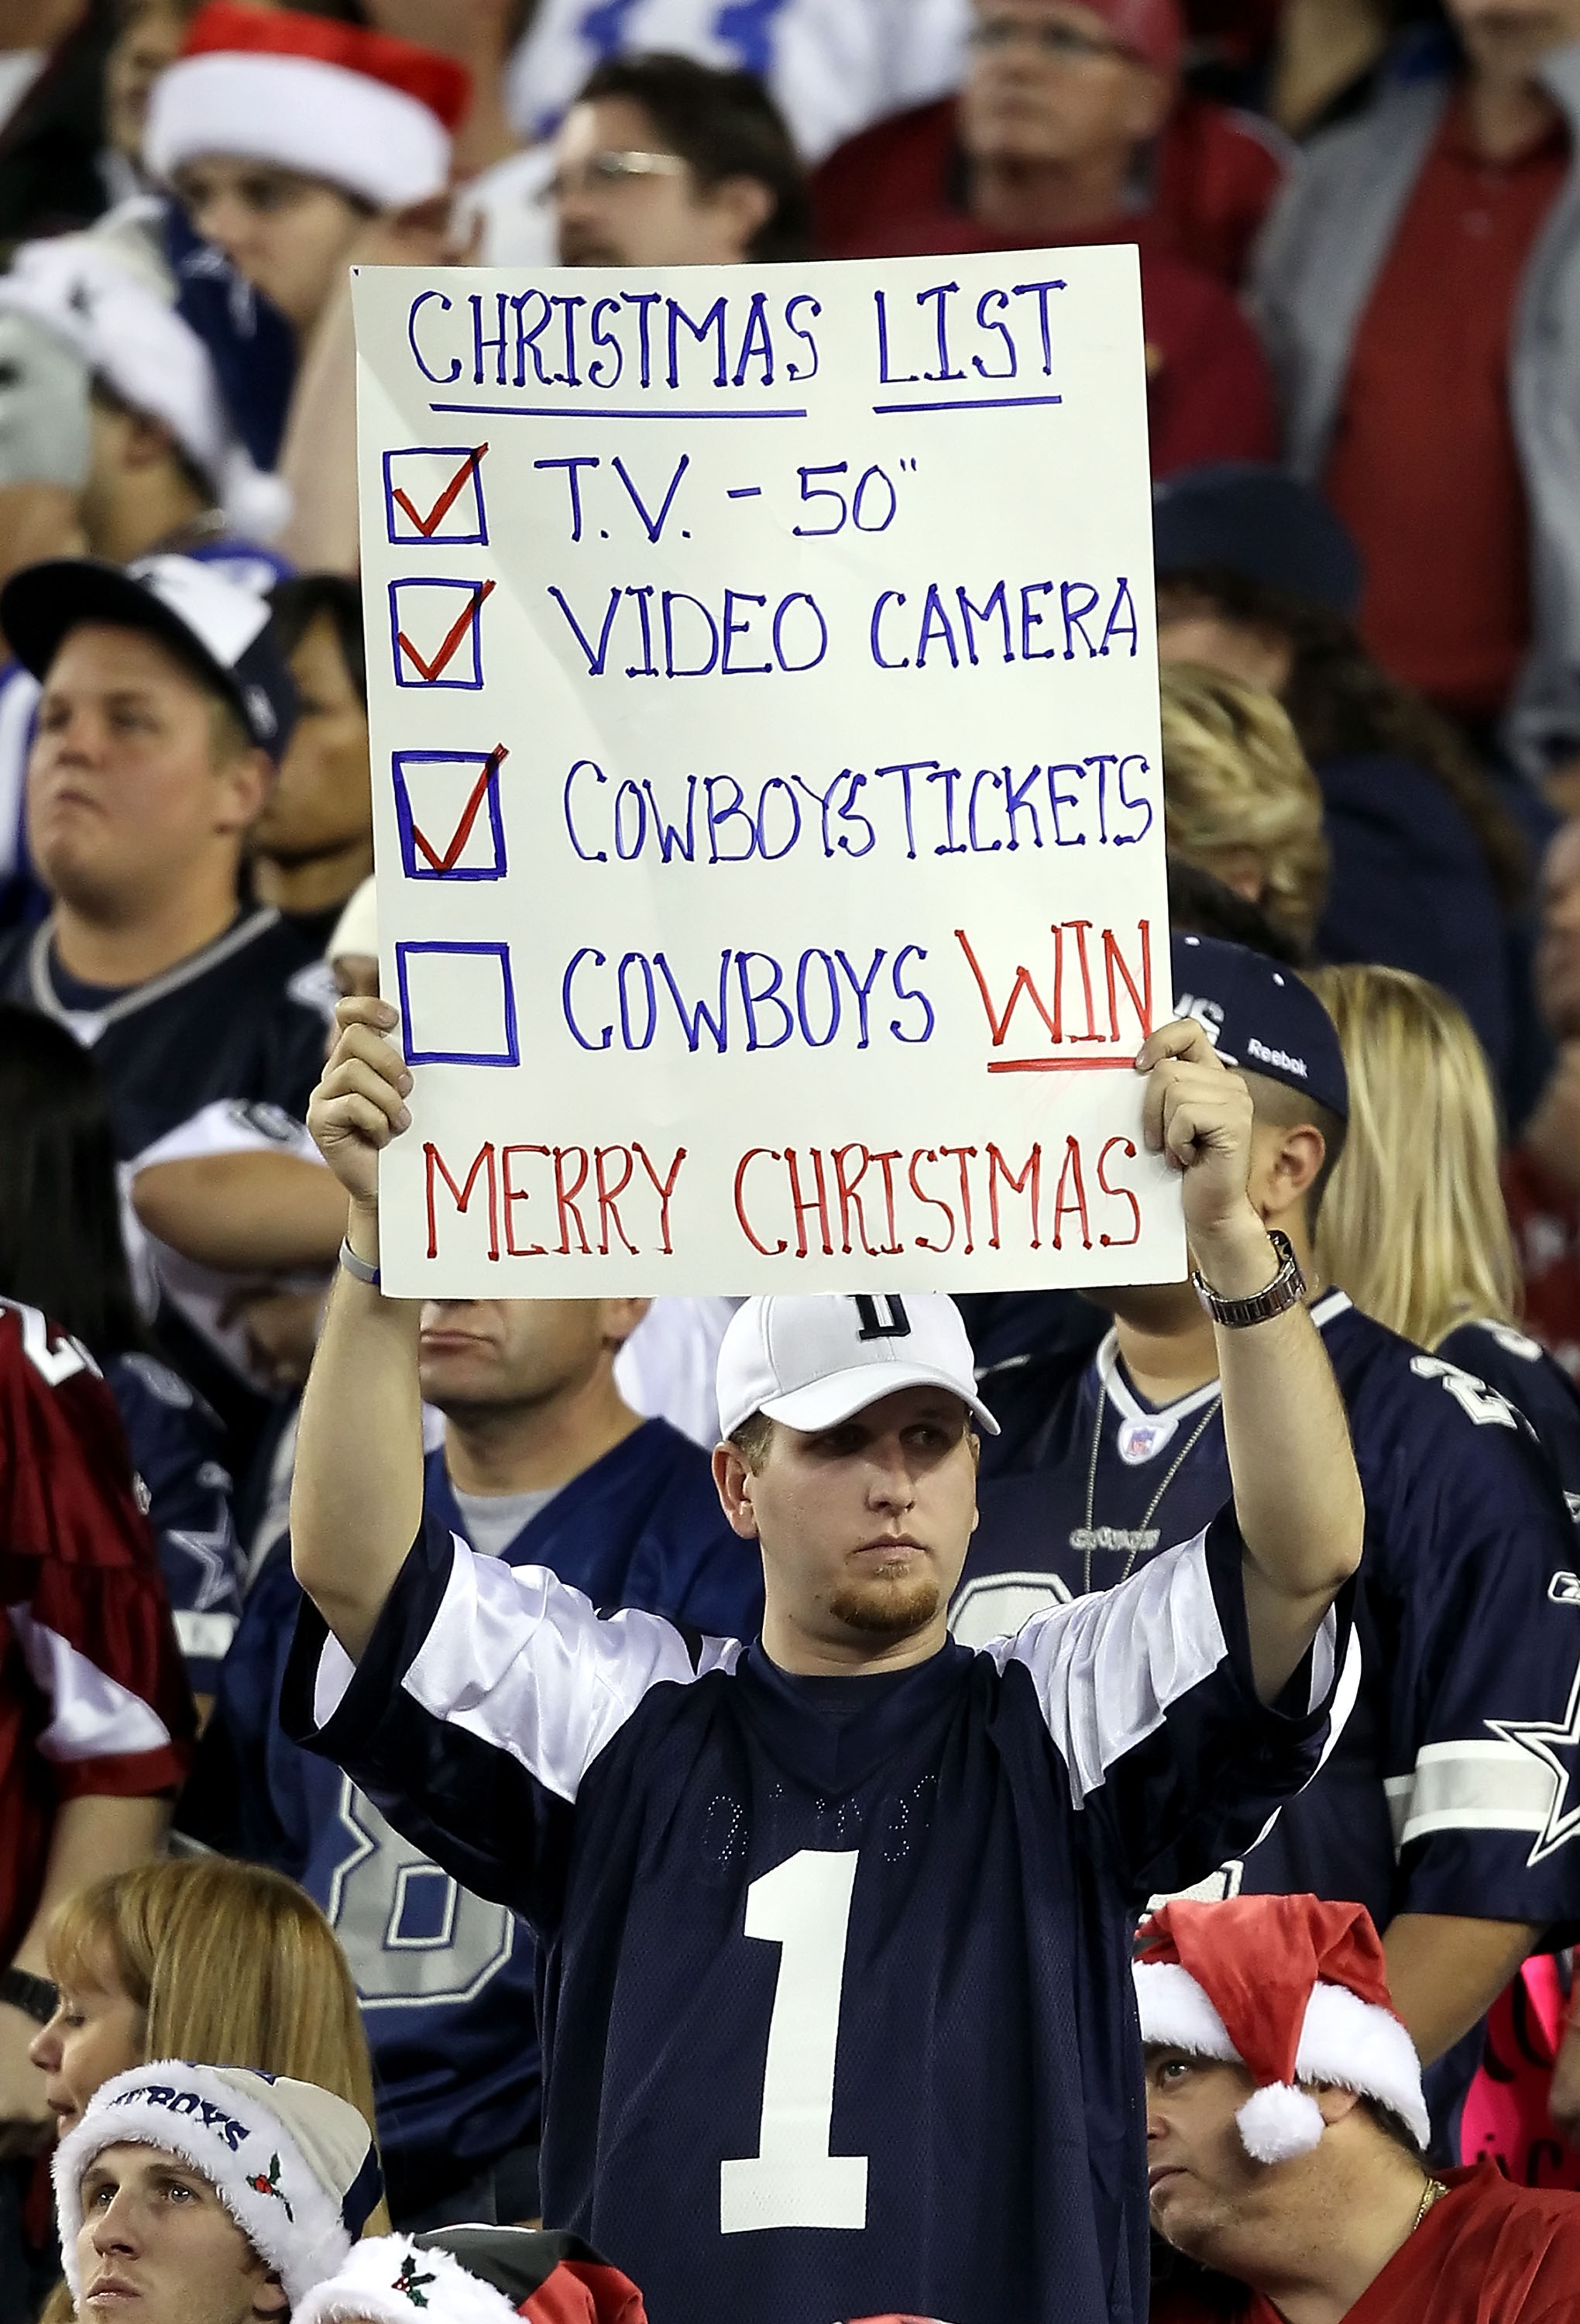 GLENDALE, AZ - DECEMBER 25:  A fan of the Dallas Cowboys holds up a sign during the NFL game against the Arizona Cardinals at the University of Phoenix Stadium on December 25, 2010 in Glendale, Arizona.  The Cardinals defeated the Cowboys 27-26.  (Photo b